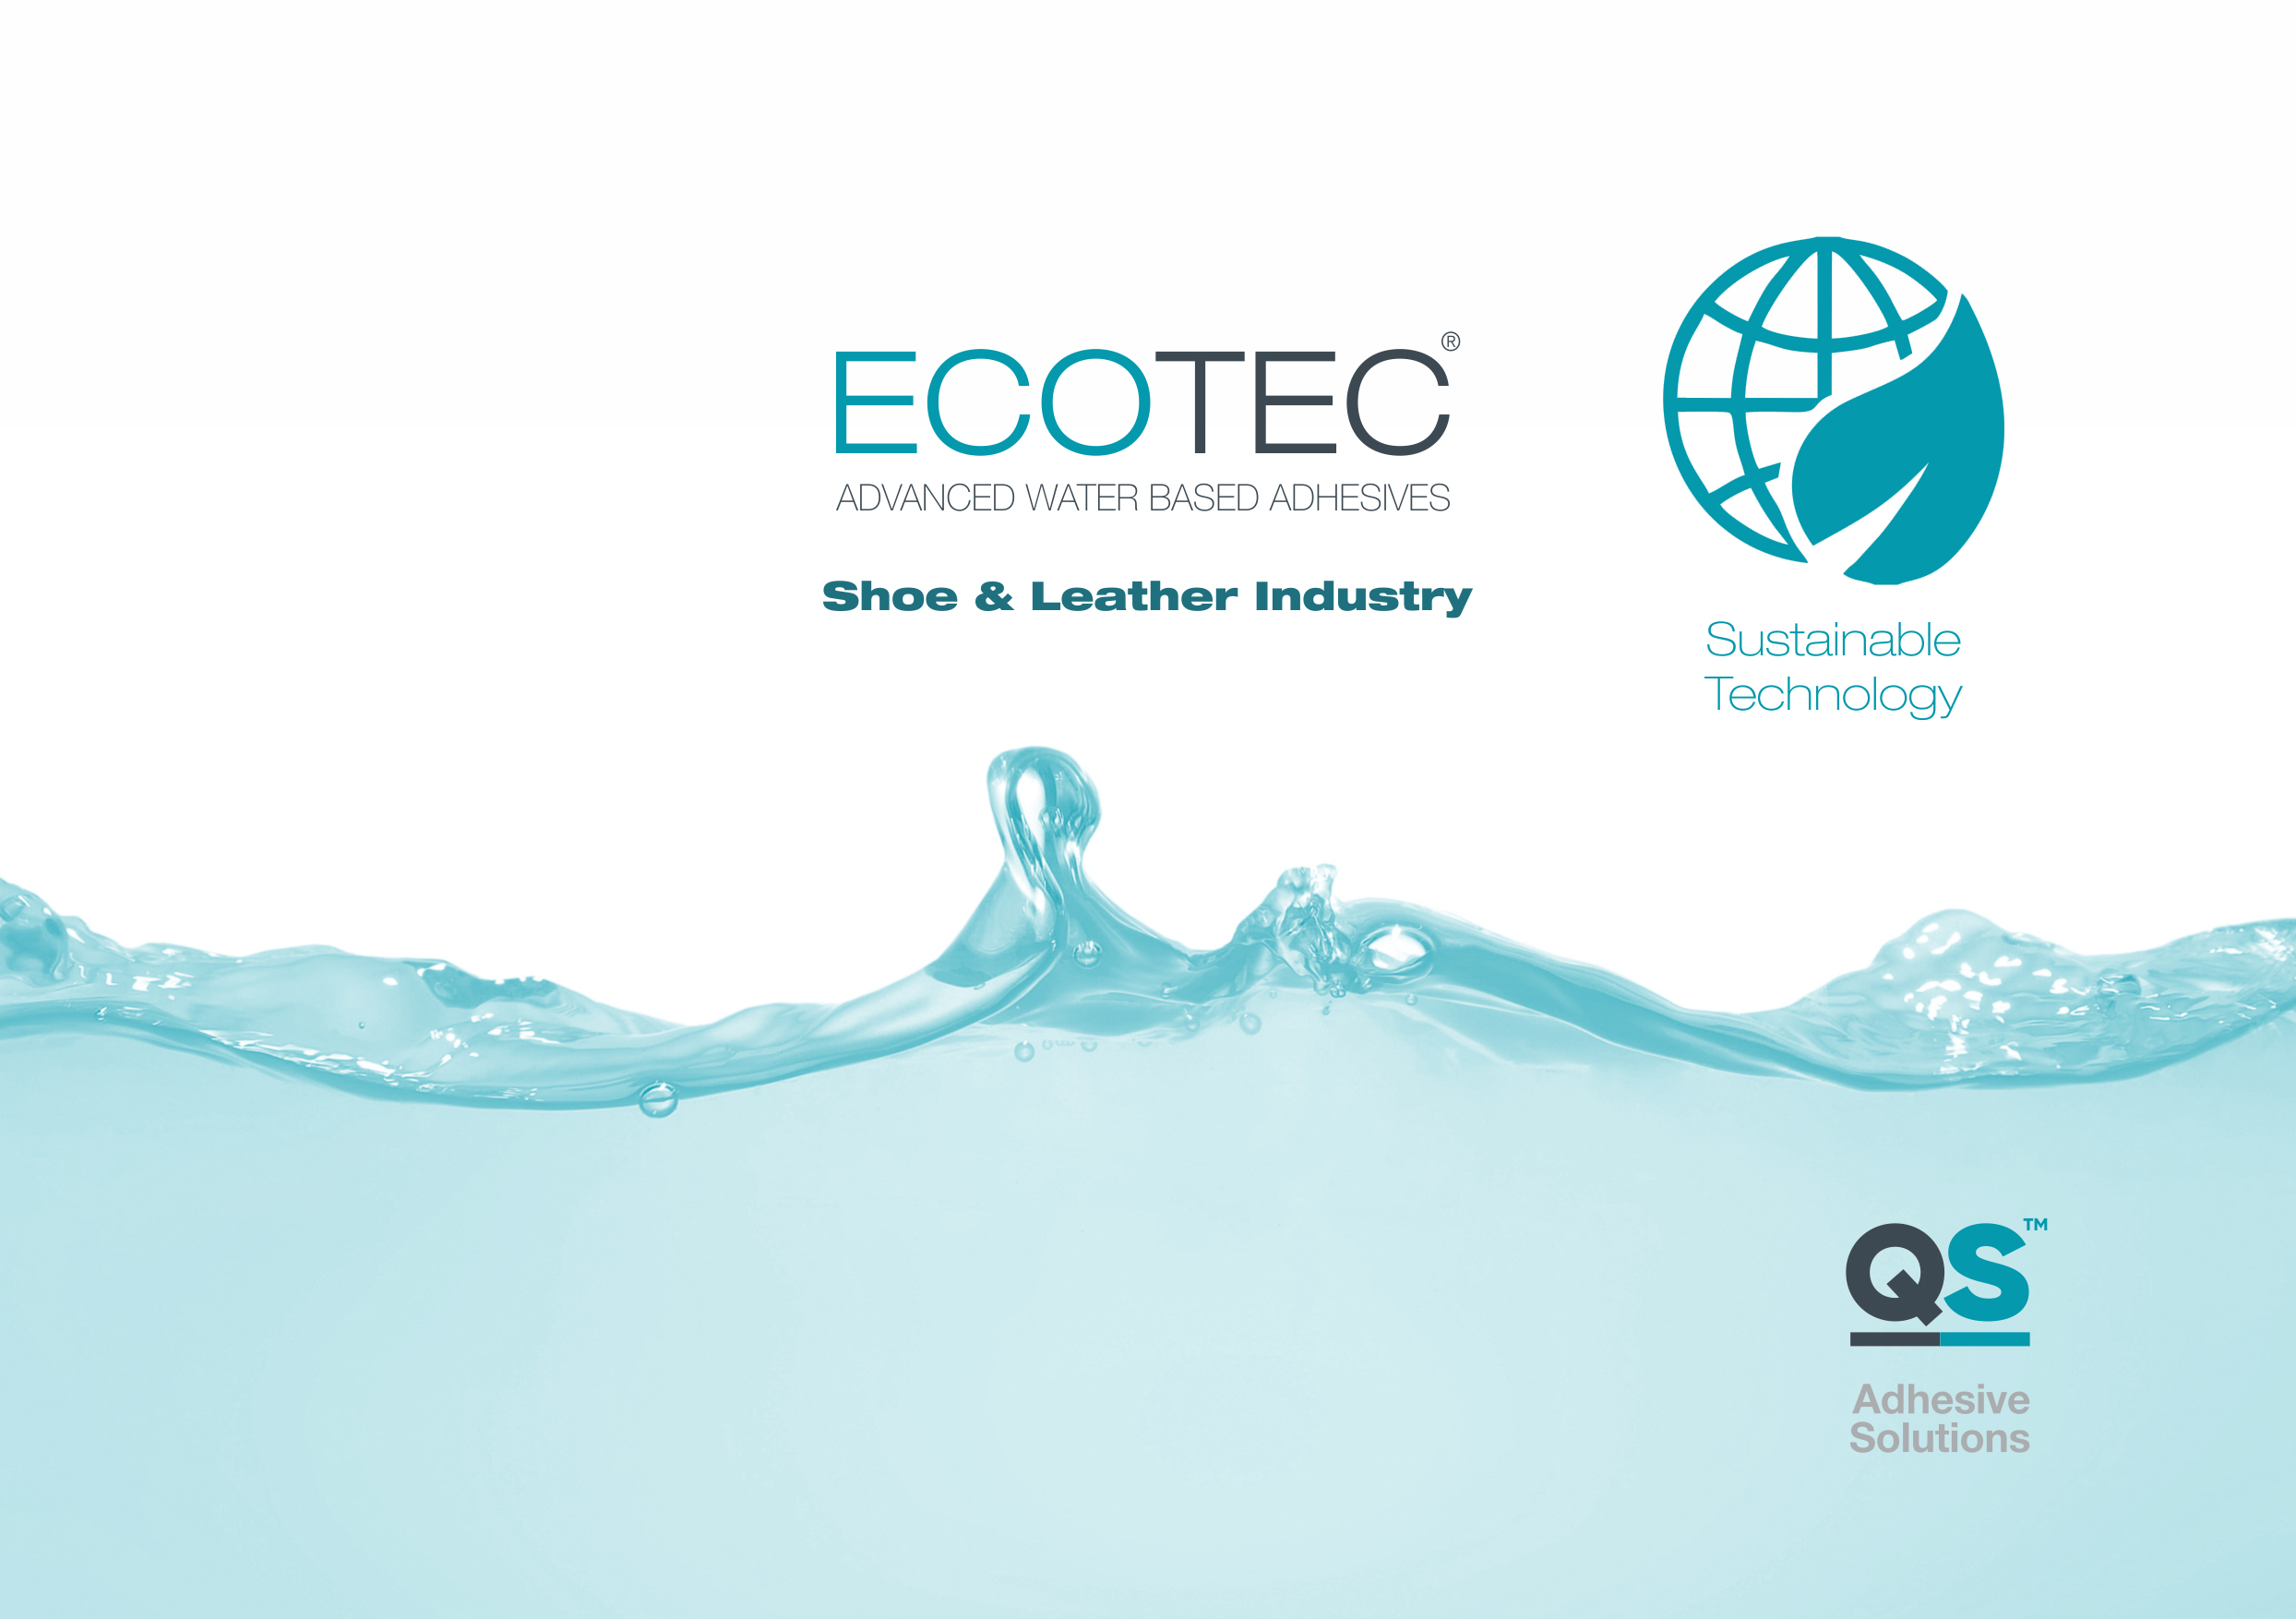 Cat_ECOTEC_newQS_Shoe_Industry_ING